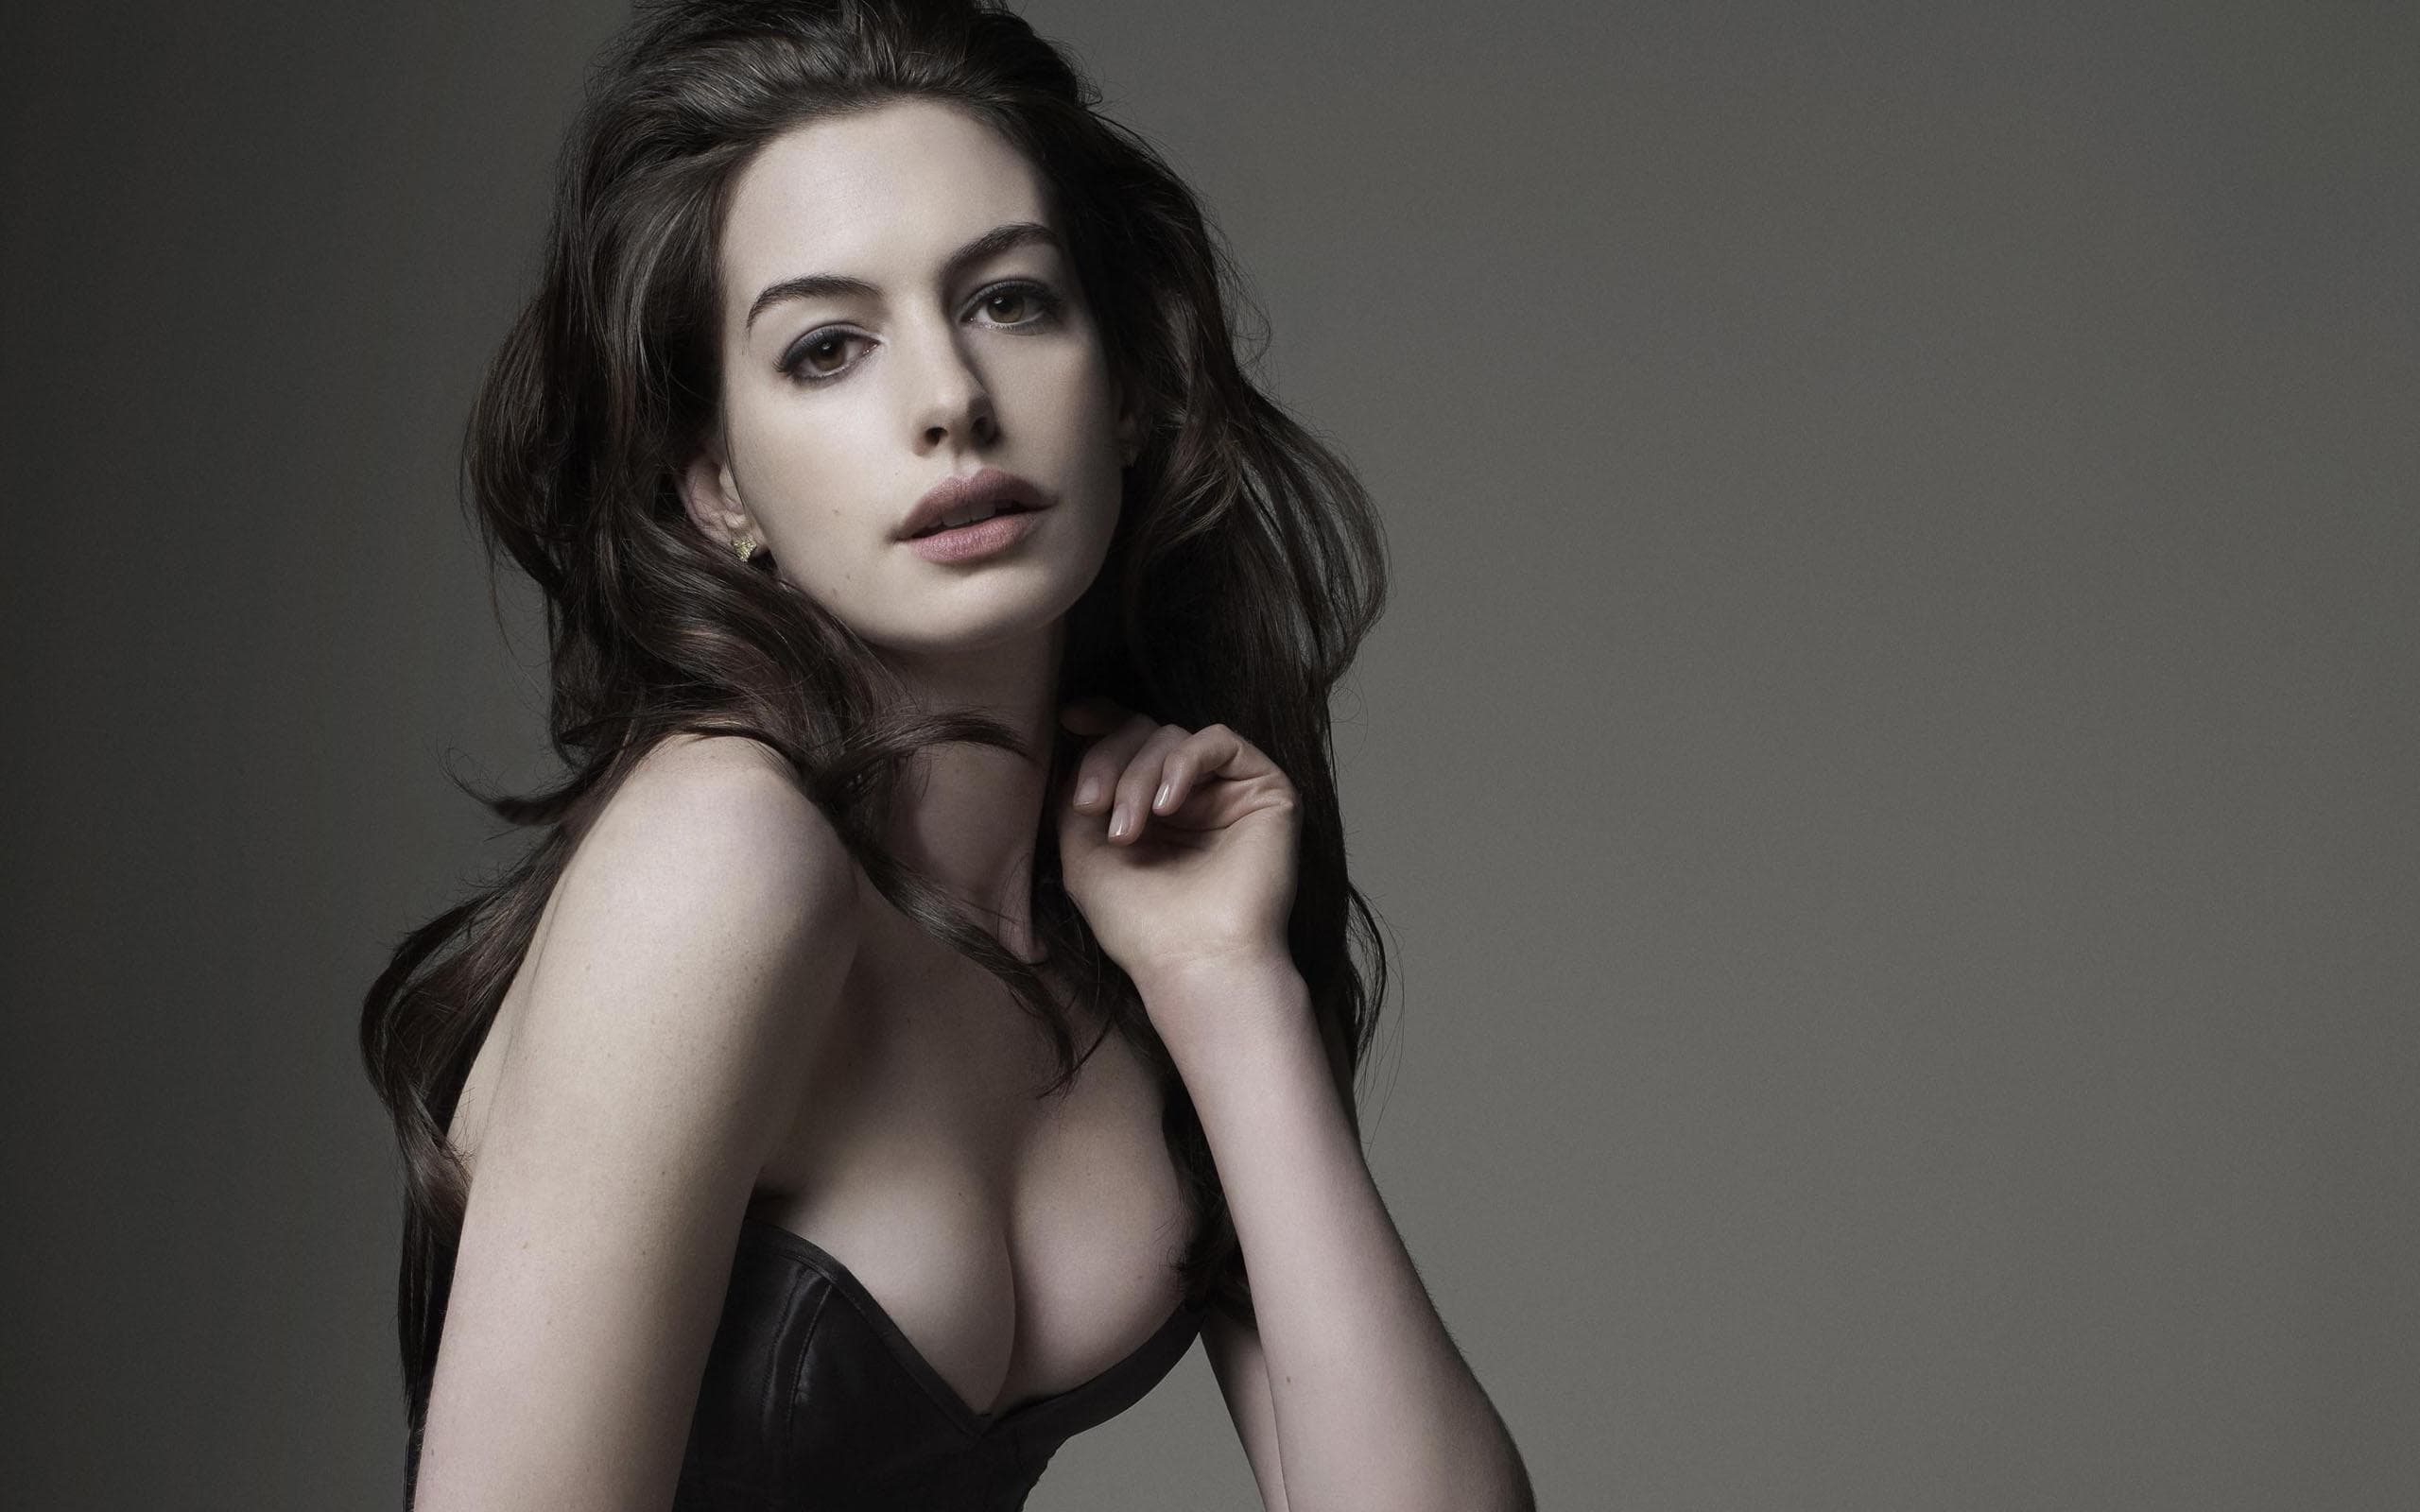 2560x1600 - Anne Hathaway Wallpapers 24